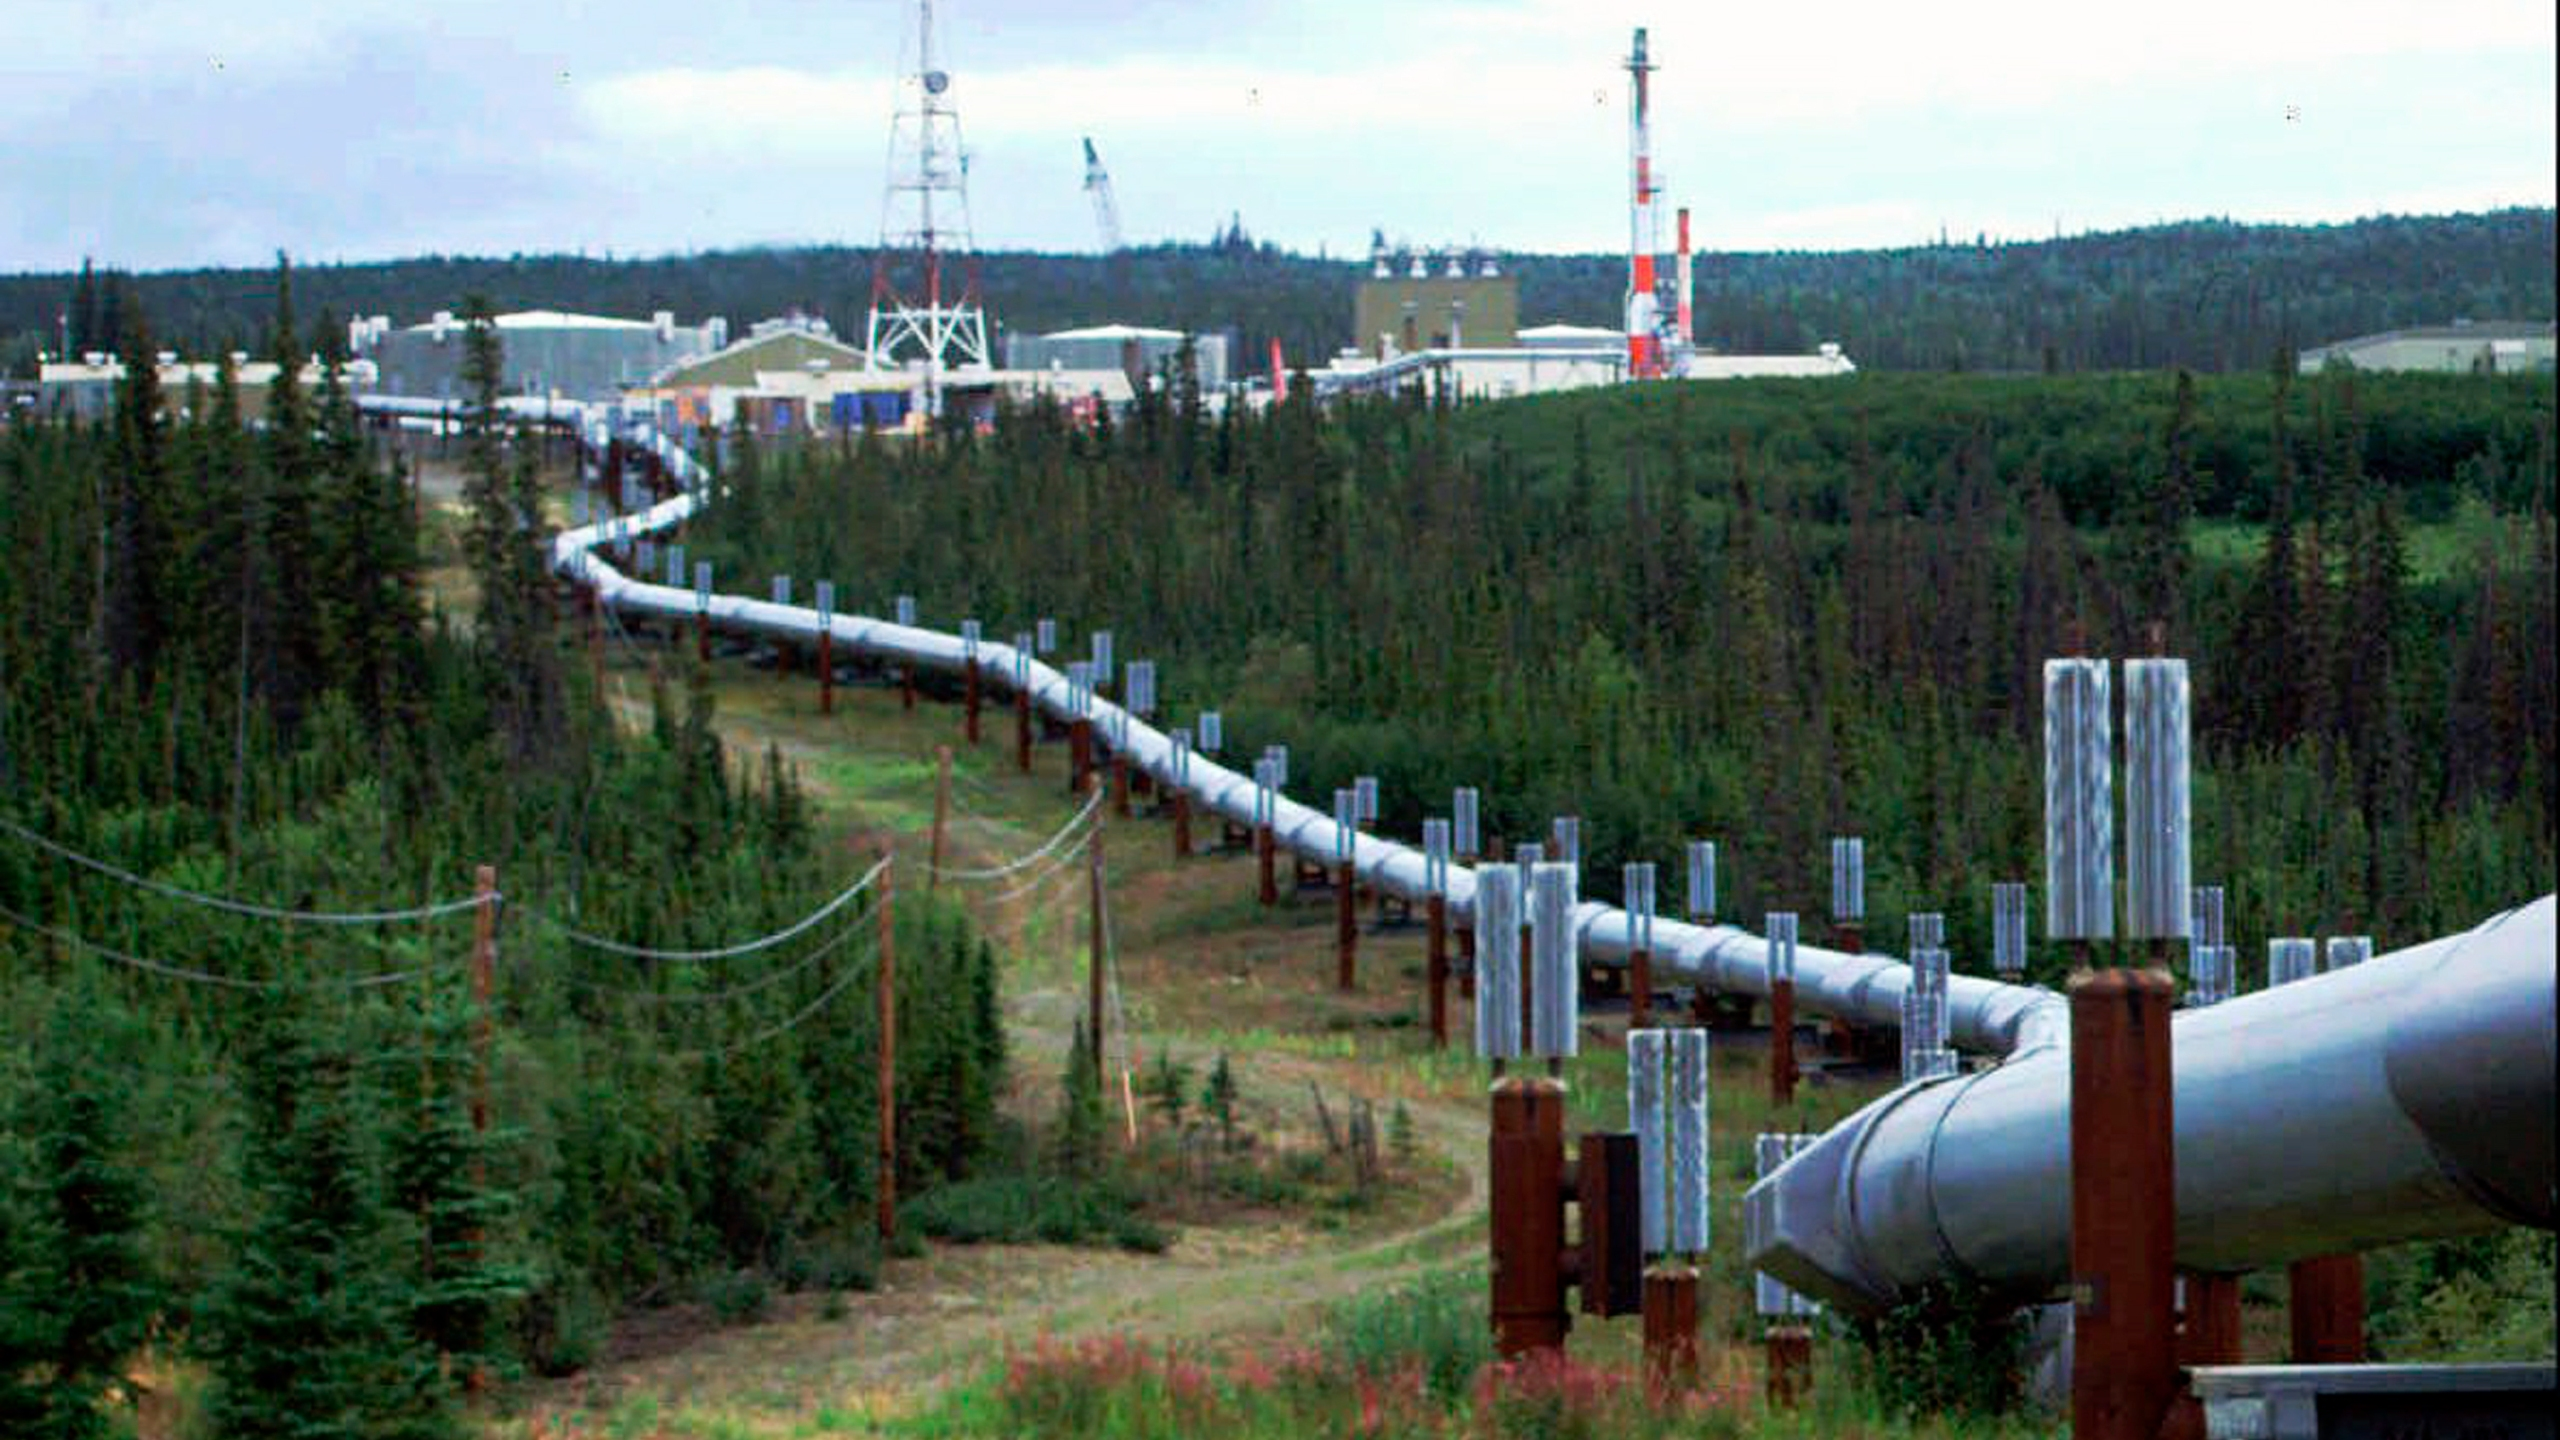 Alyeska pipeline savings and investment aberdeen investment trusts performance machine